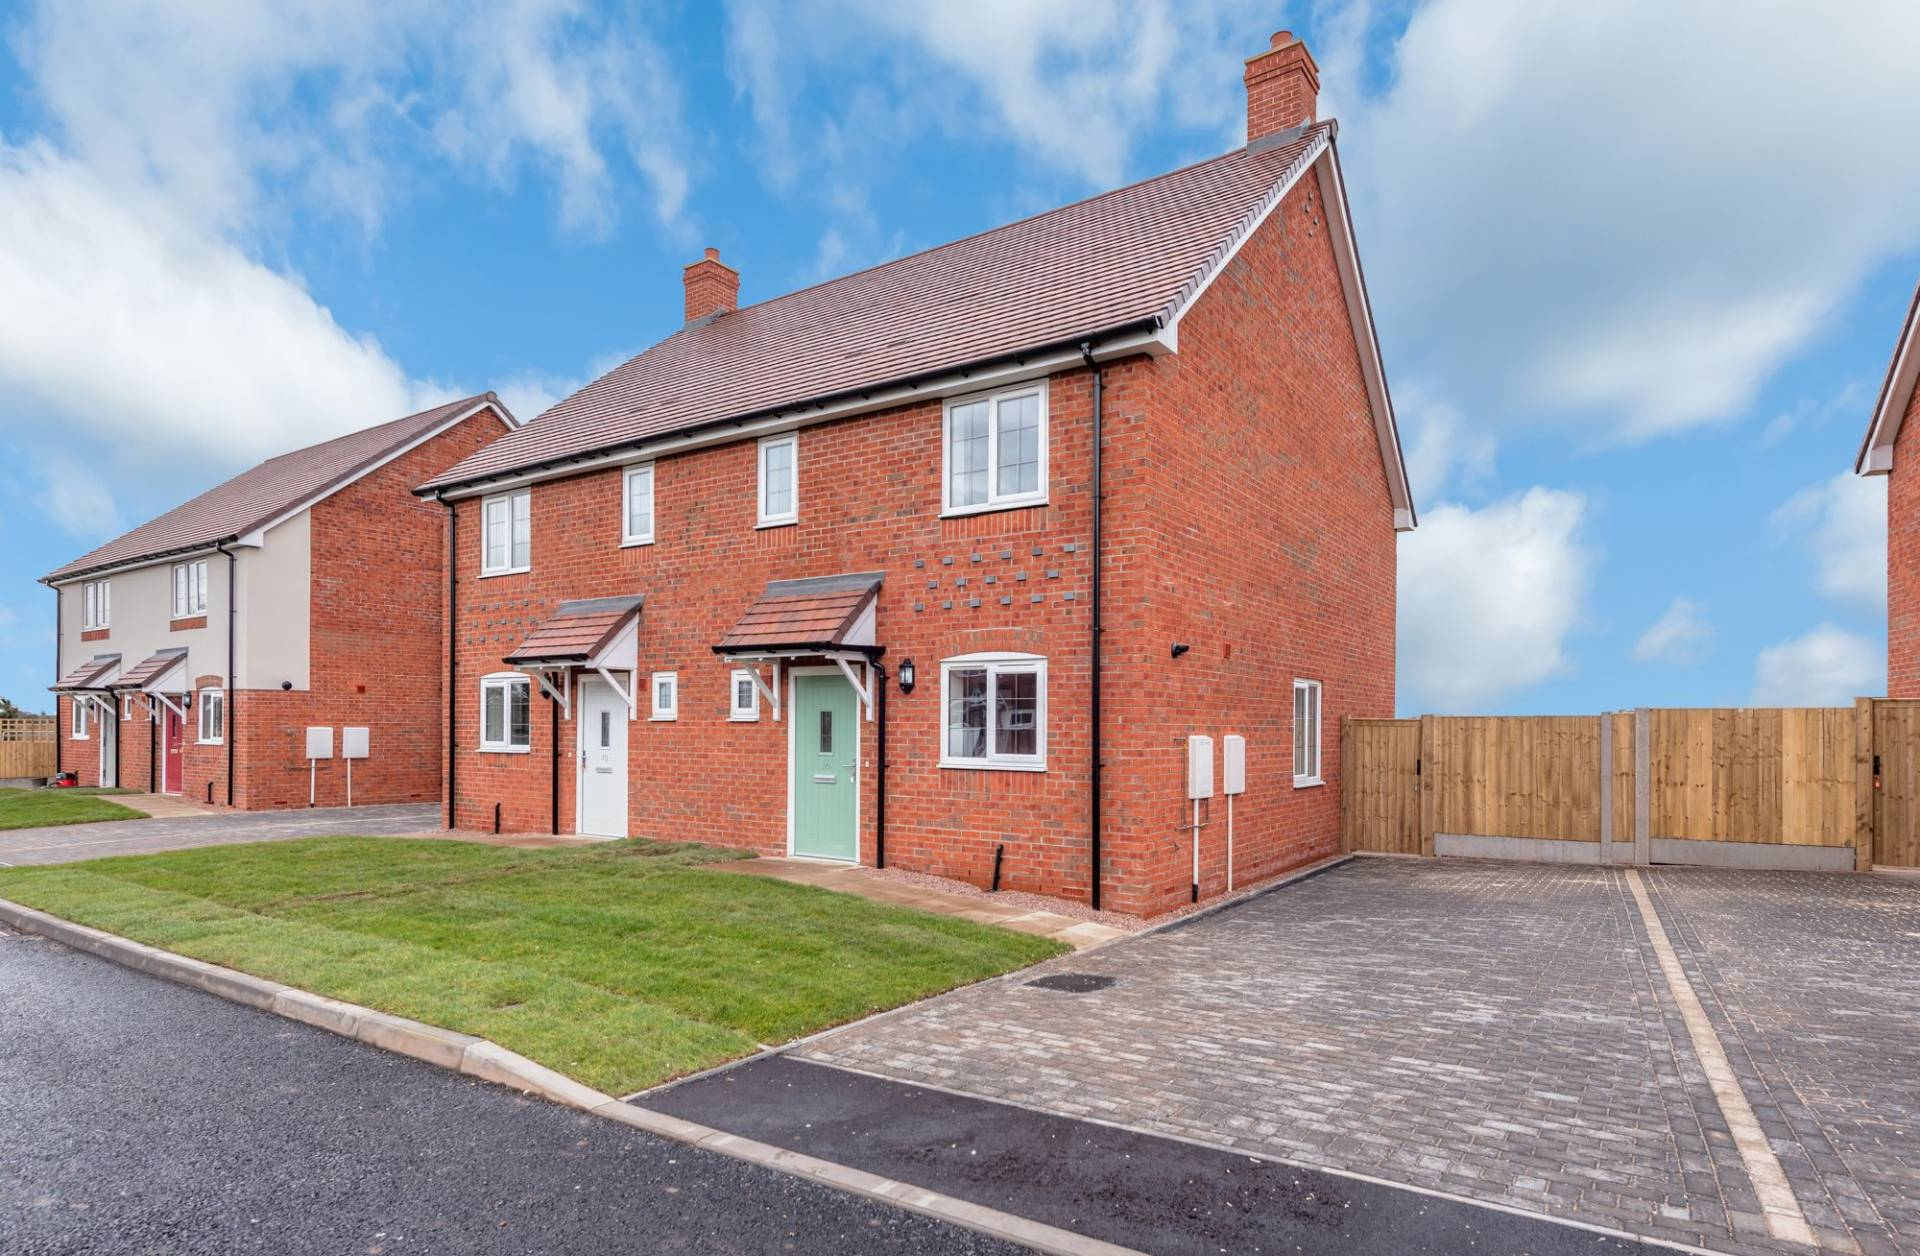 A development of 20 semi-detached two and three-bedroomed houses in Shawbury, Shropshire.  The contract with Floreat Housing Group, worth around £2.2million, began in March 2018 and is expected to complete in March 2019.